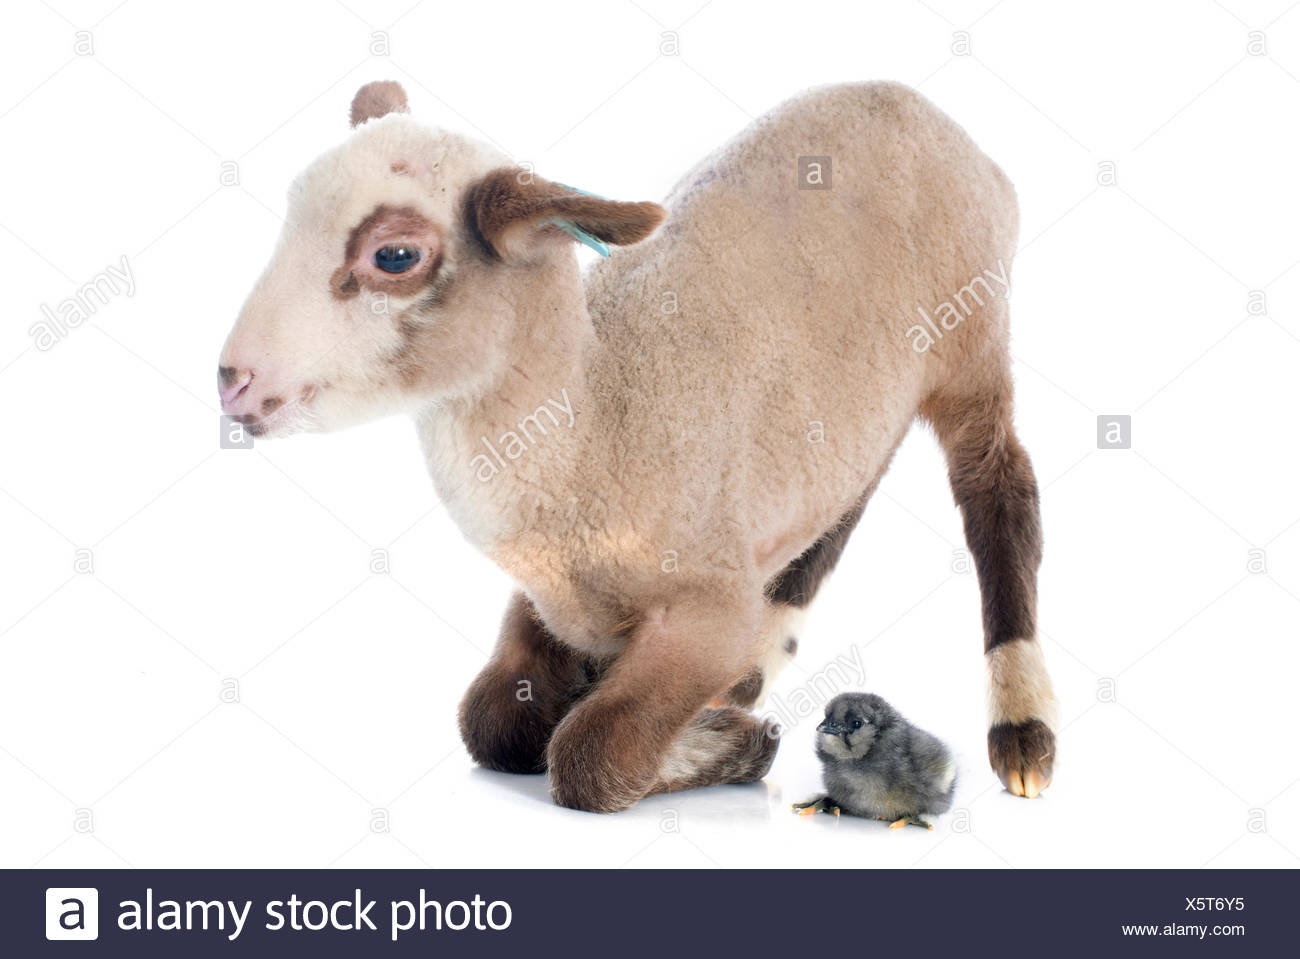 young lamb and chick  in front of white background - Stock Image